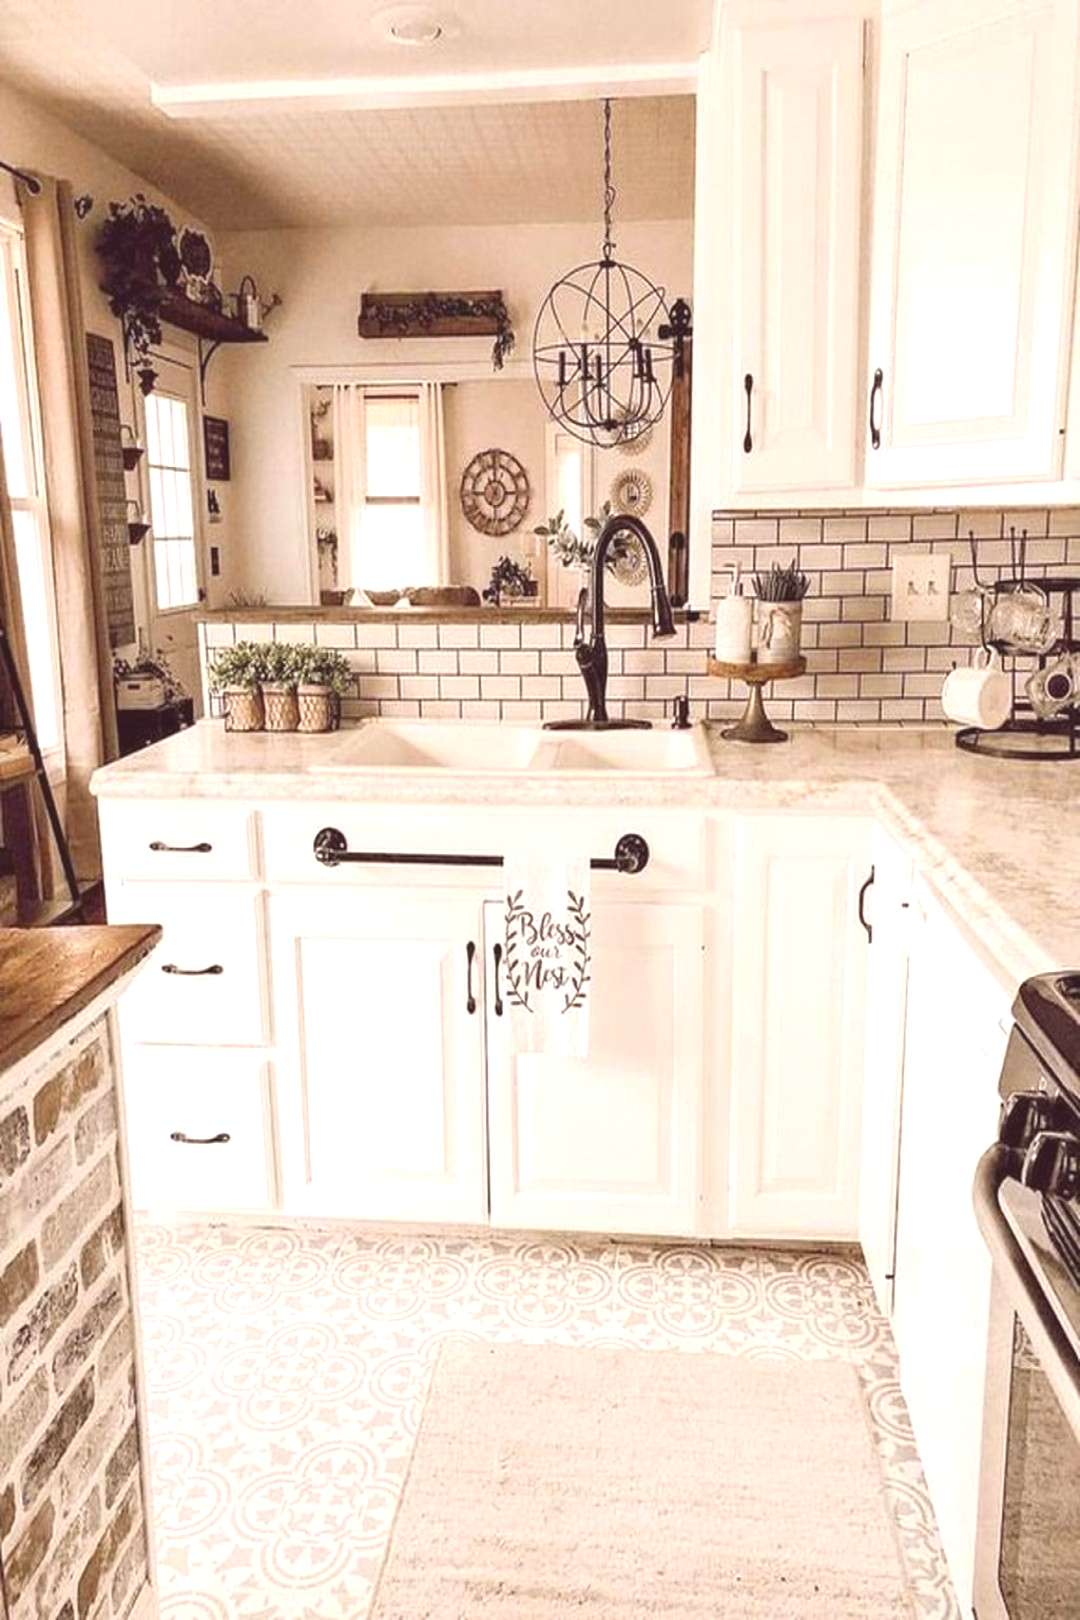 39 Great Ideas For Modern Farmhouse Kitchen Decorations